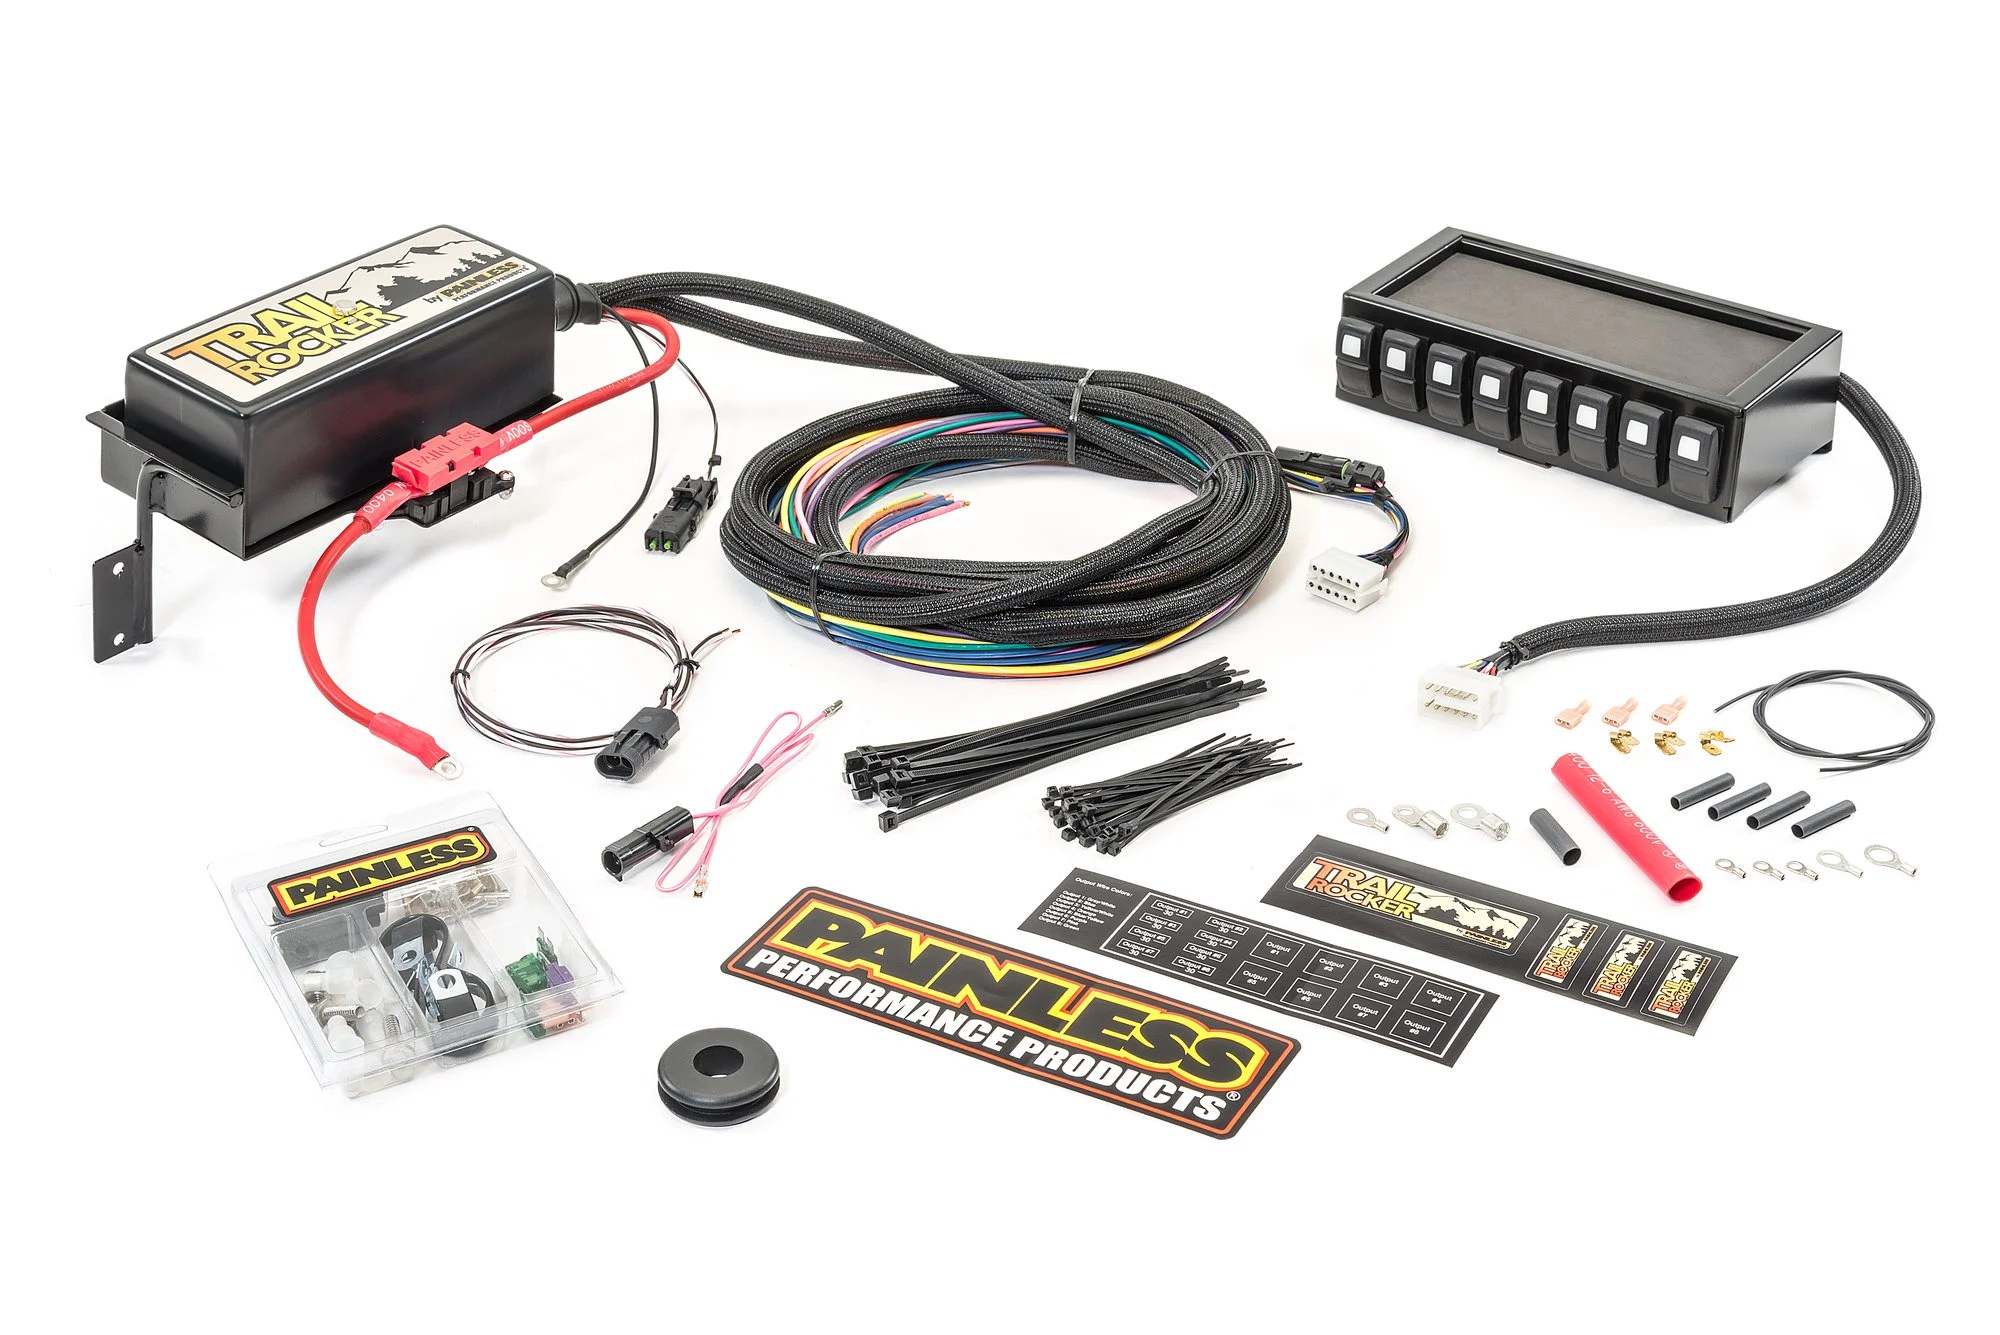 hight resolution of painless wiring 57040 trail rocker system with dash mounted panel painless wiring harness jeep cj7 painless